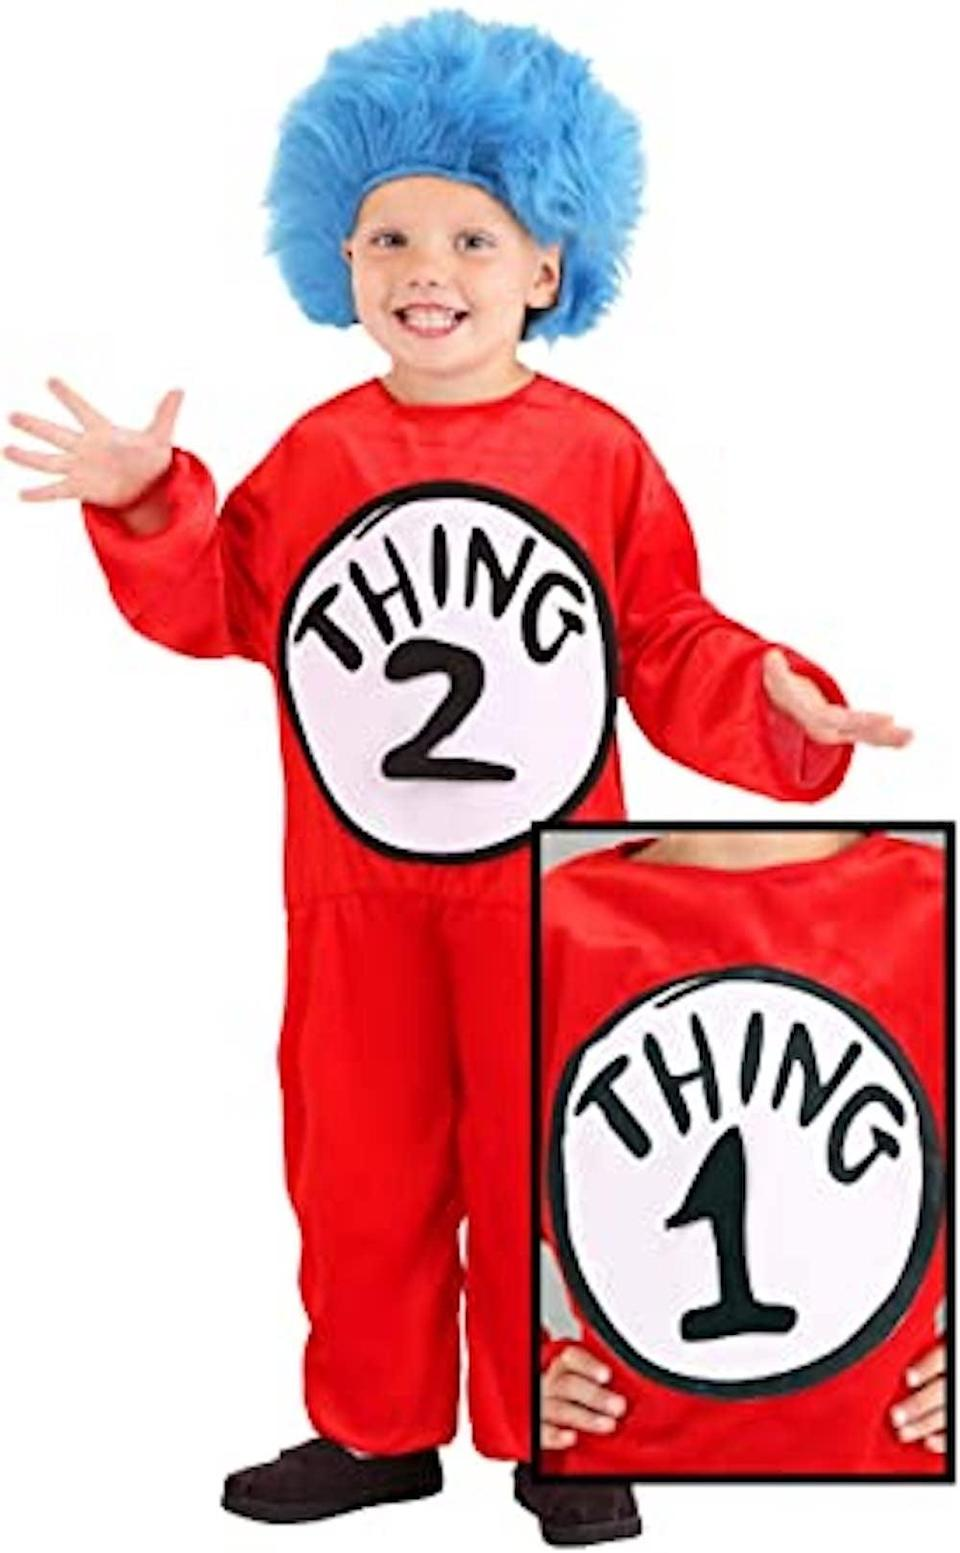 <p>Sometimes the only way to remember which twin is which is by labeling them as <span>Thing 1 and Thing 2</span> ($25).</p>